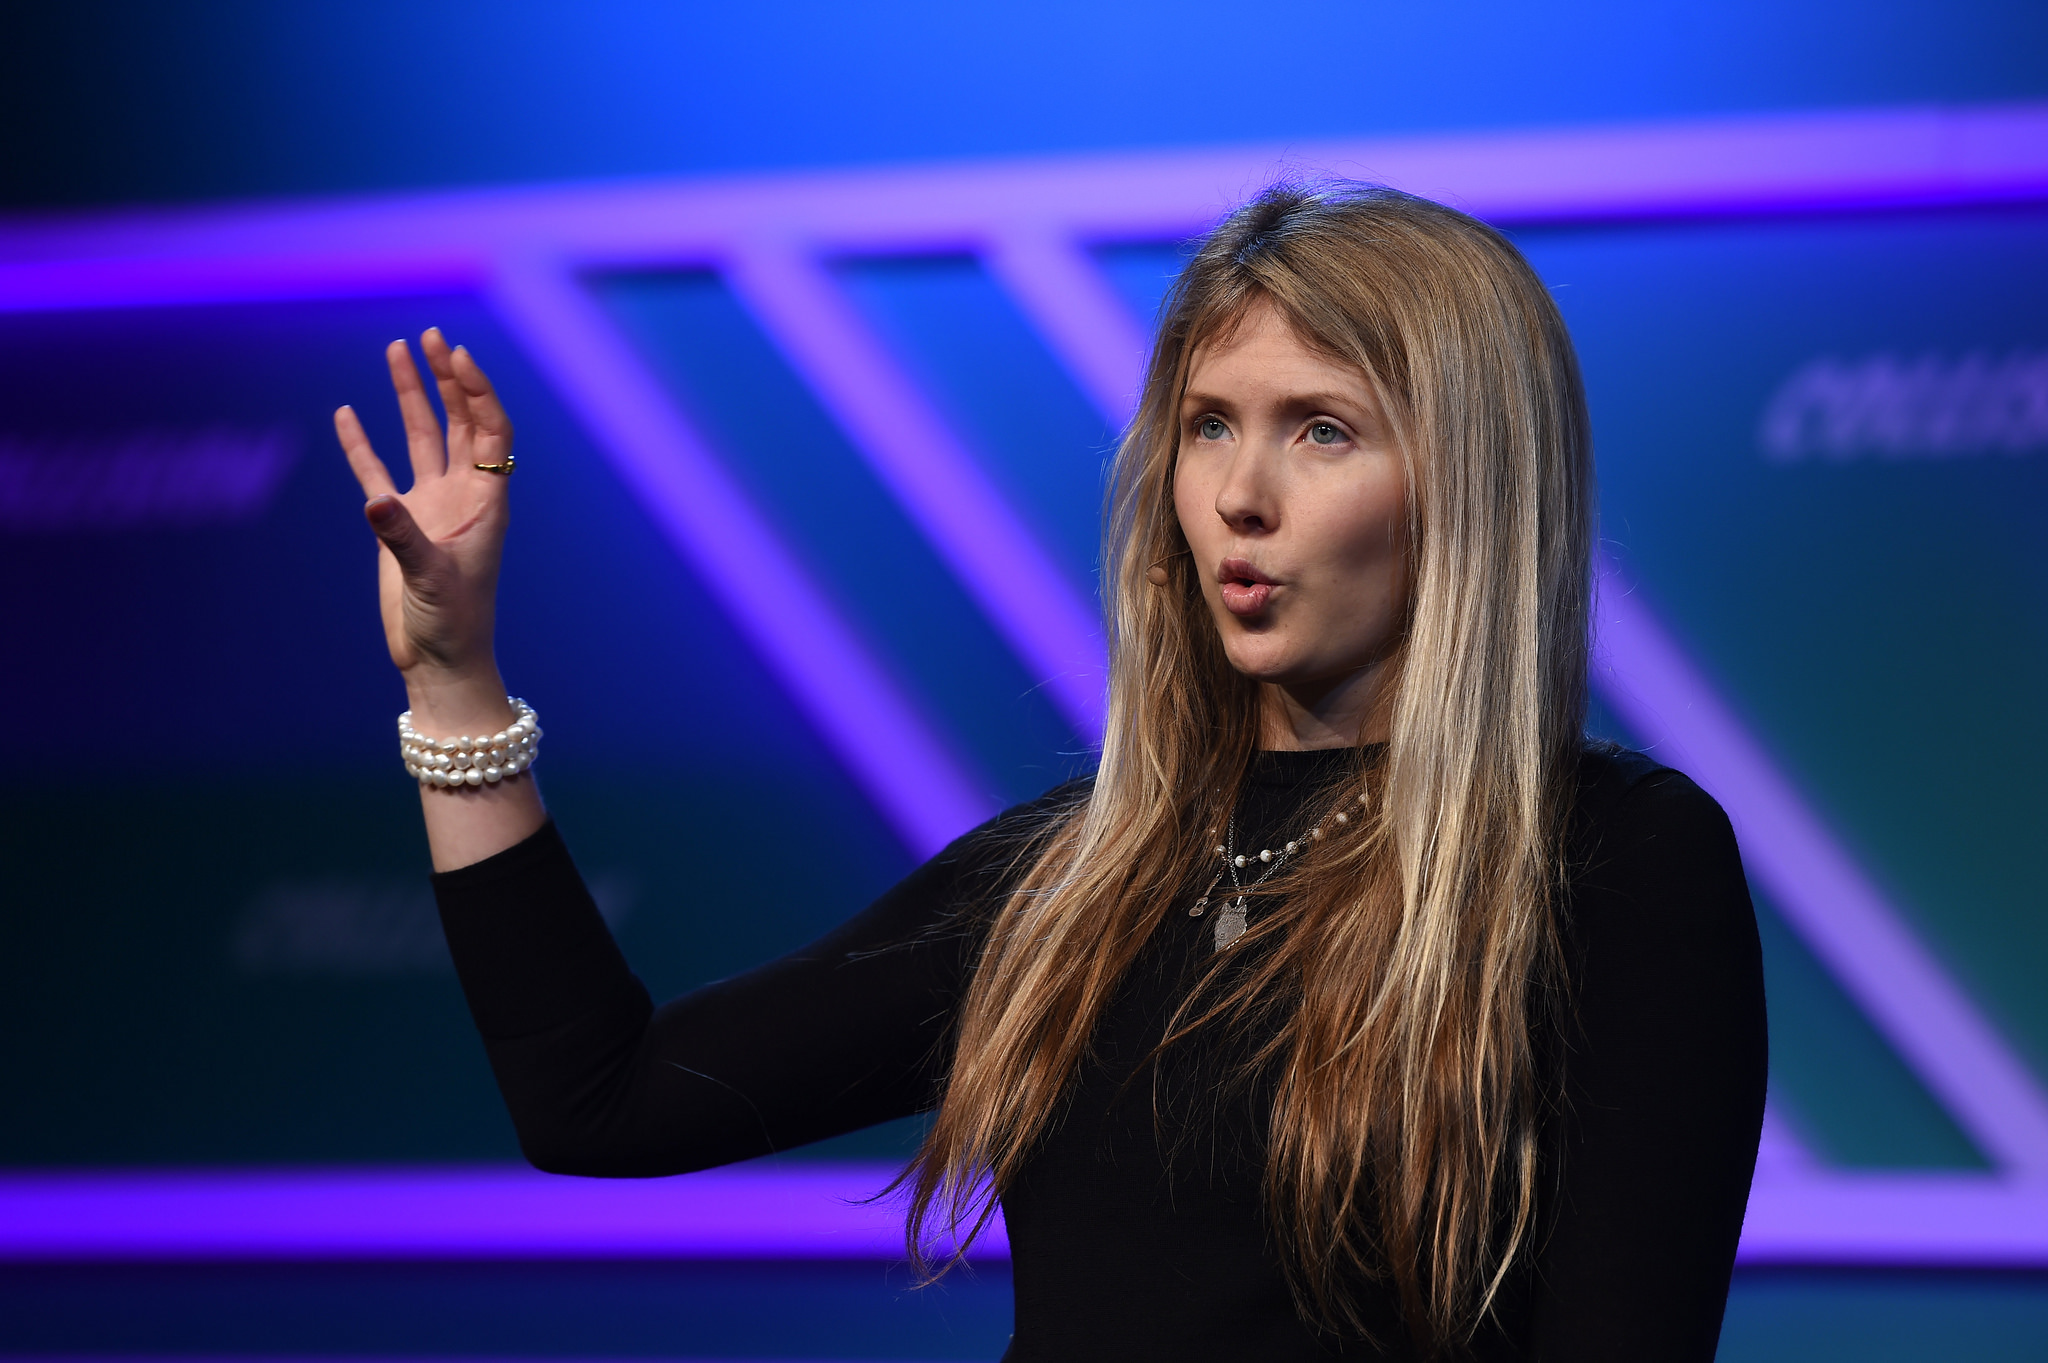 Beatie Wolfe talking at Collision in New Orleans for Web Summit